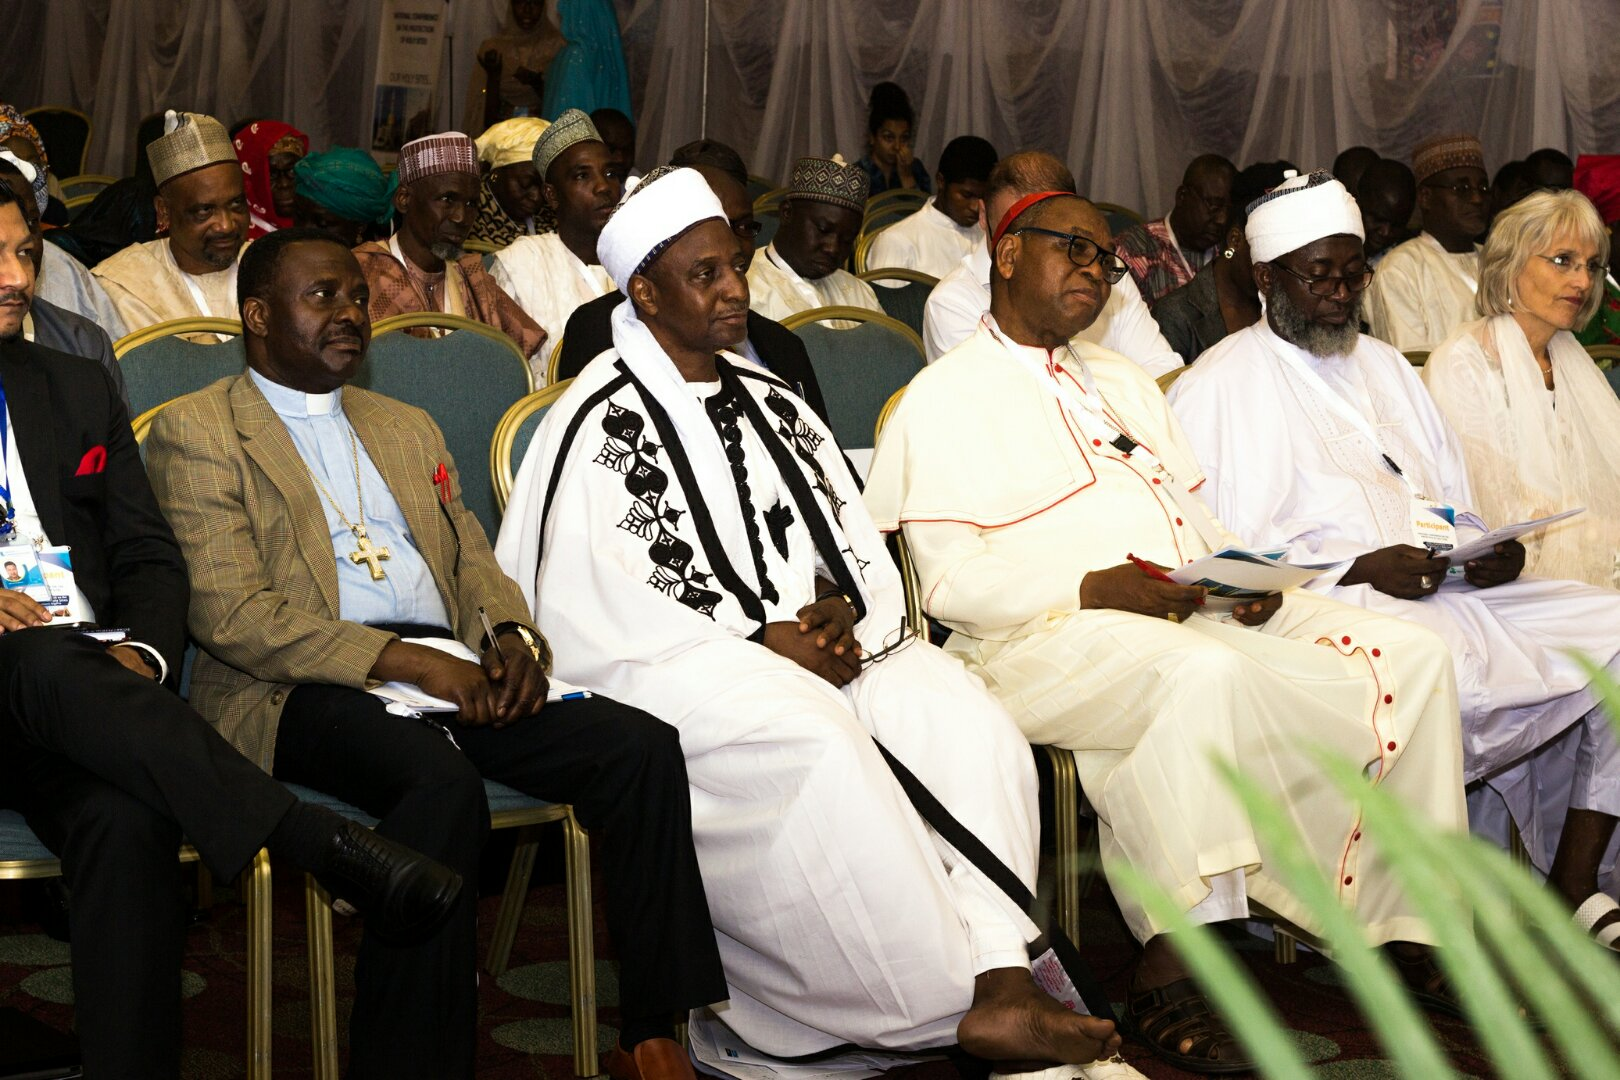 CAN President, Cardinal Onaiyekan, Wazirin Katsina, Others Insist on the Roots of Christian-Muslim Conflict